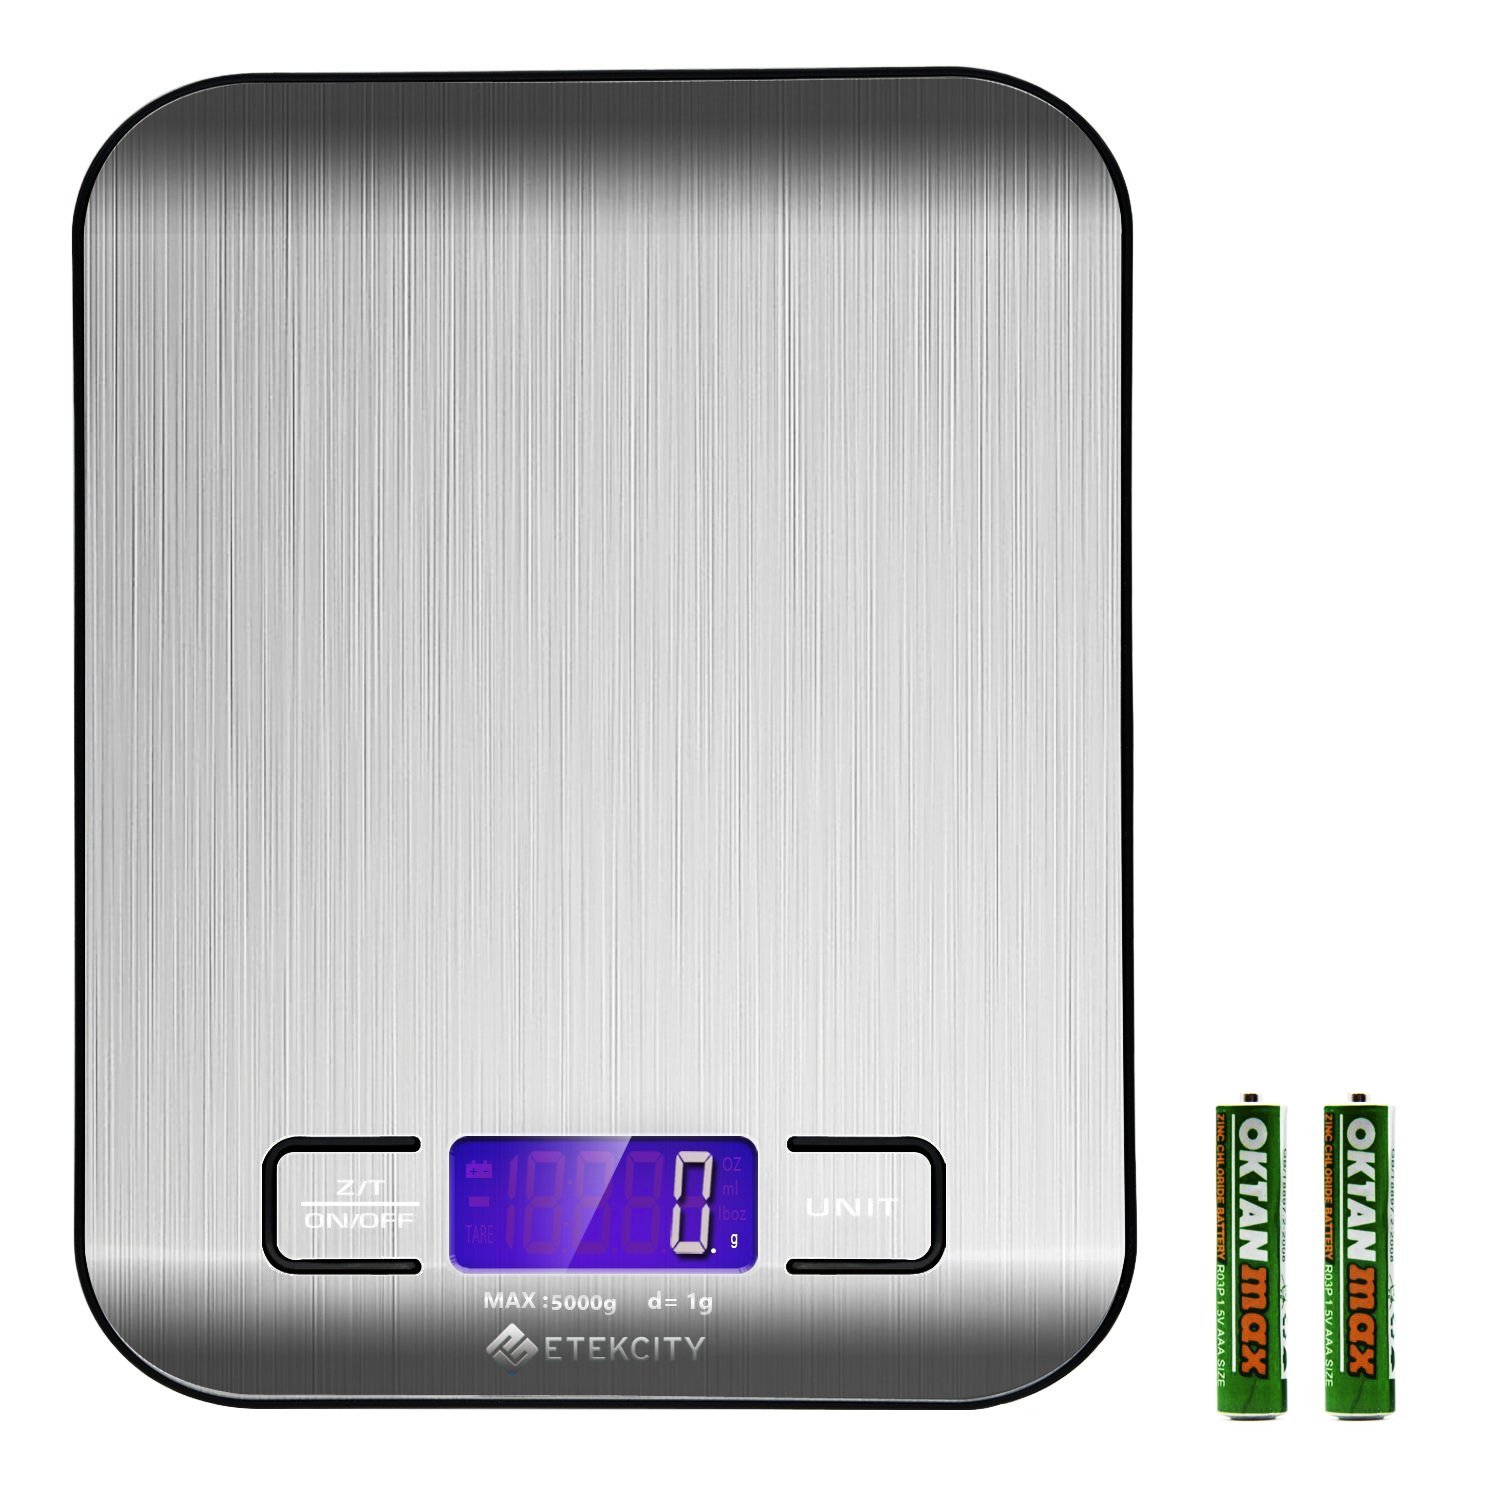 Stainless Steel Digital Food Scale